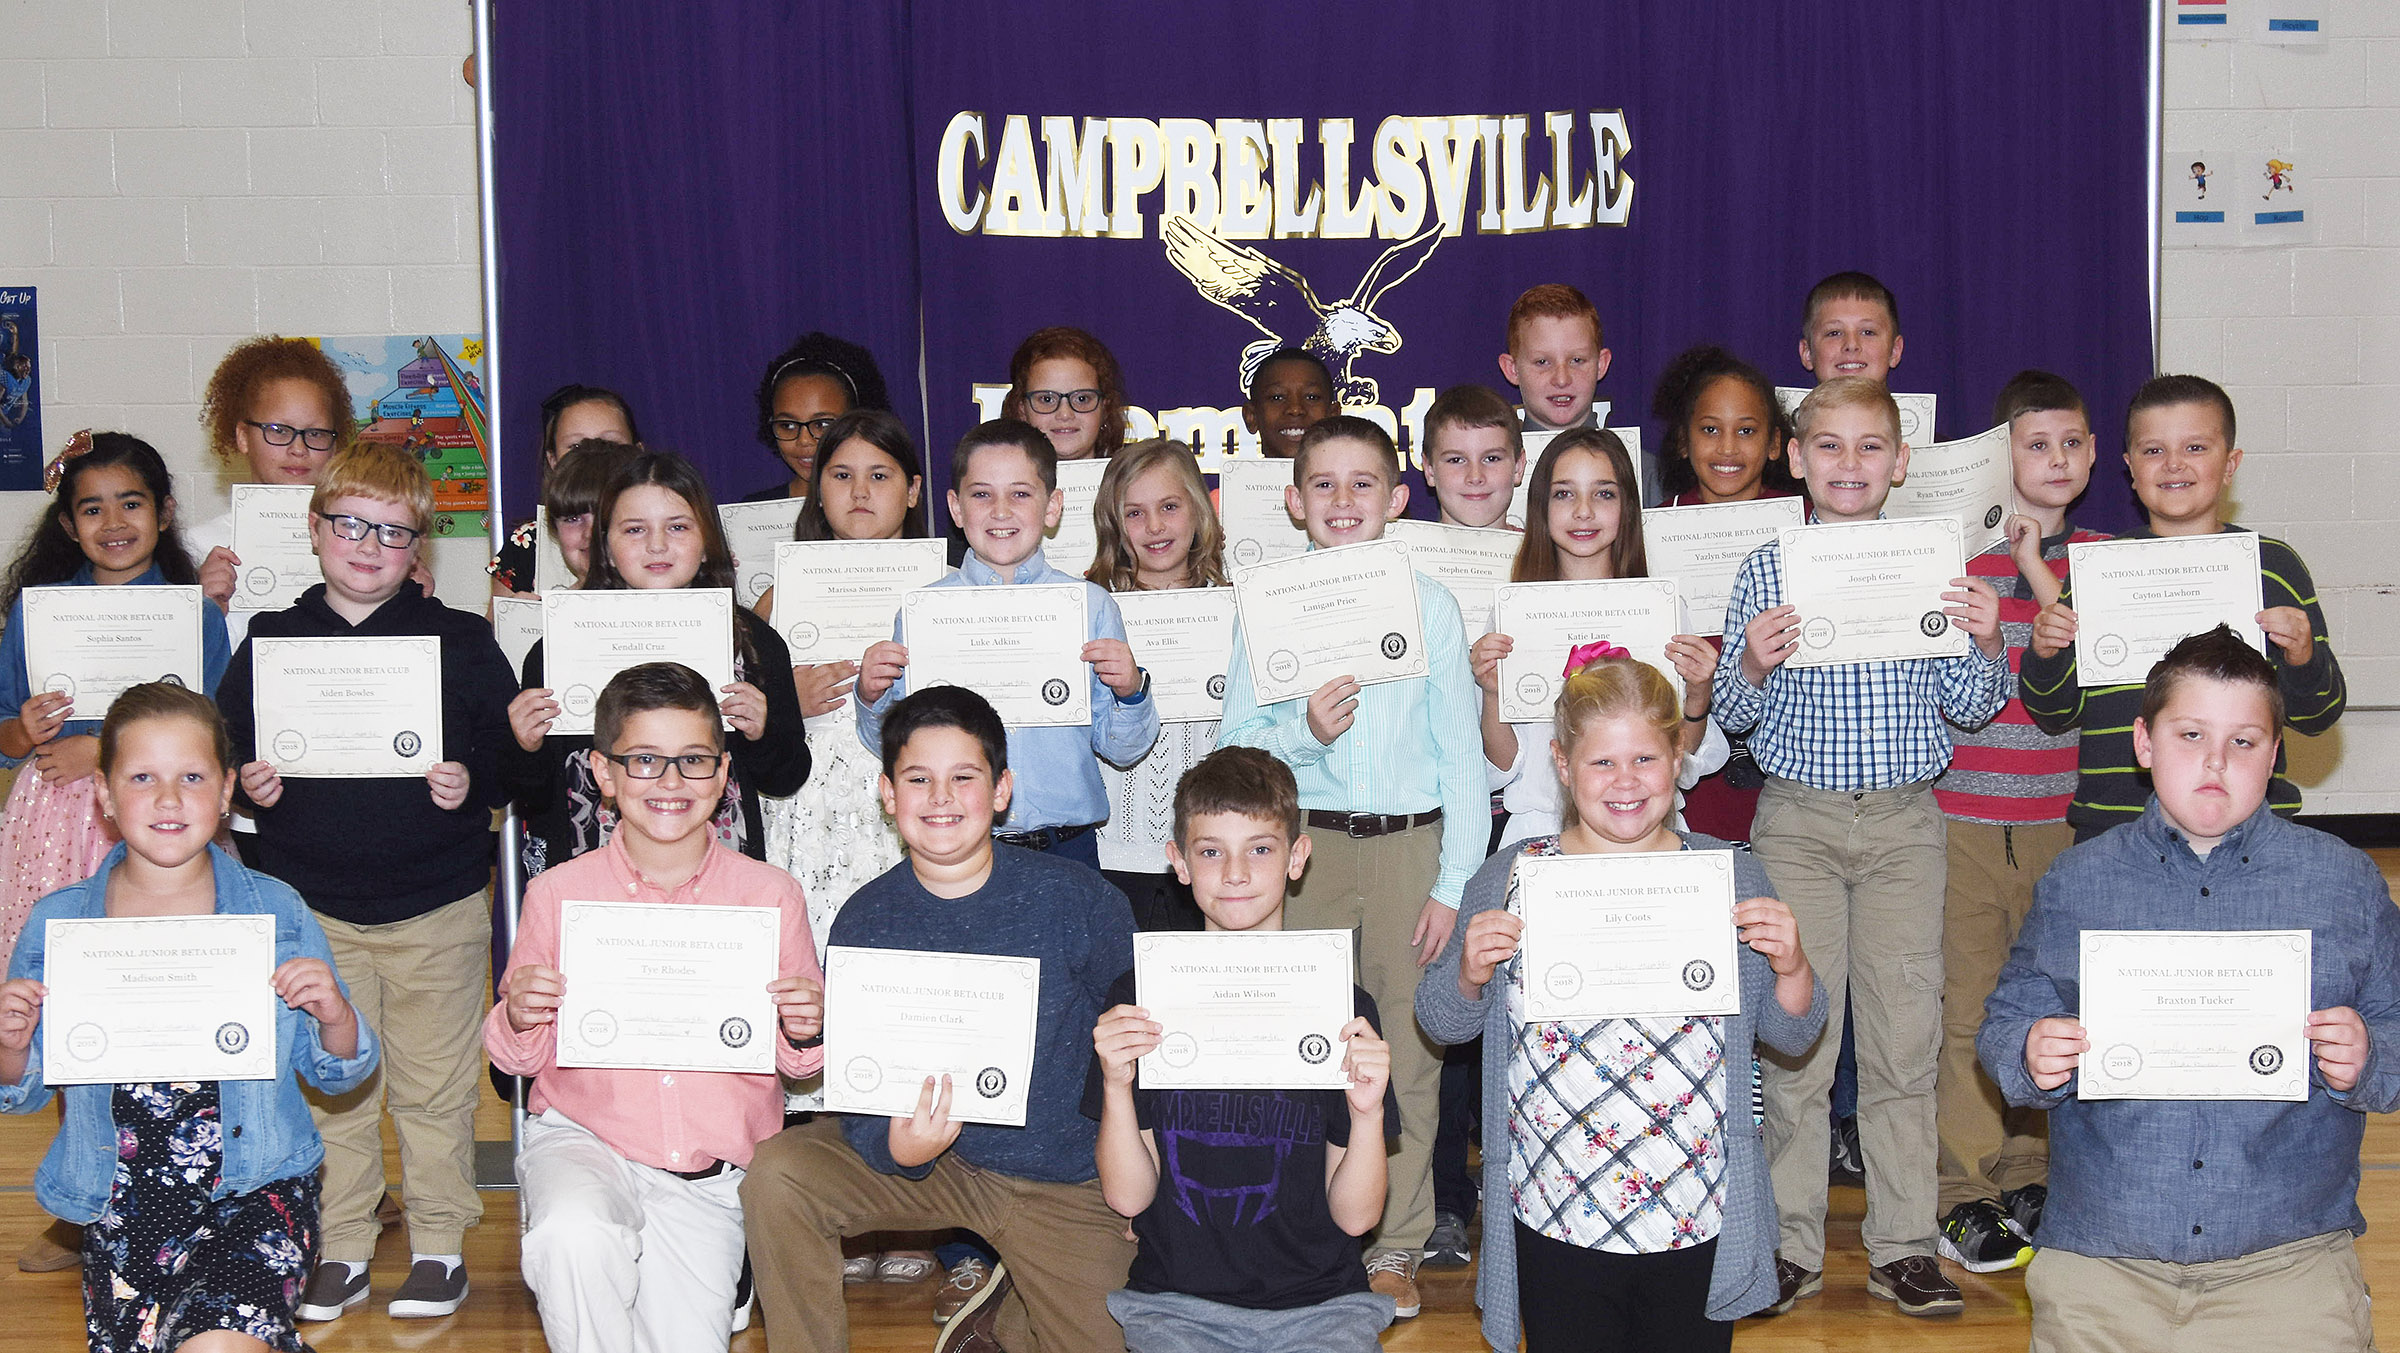 Fourth-graders inducted into the first-ever CES Junior Beta Club are, from left, front, Madison Smith, Tye Rhodes, Damien Clark, Aidan Wilson, Lily Coots and Braxton Tucker. Second row, Sophia Santos, Aiden Bowles, Kaleigh Wilhoite, Kendall Cruz, Marissa Sumners, Luke Adkins, Ava Ellis, Lanigan Price, Stephen Green, Katie Lane, Yazlyn Sutton, Joseph Greer, Ryan Tungate and Cayton Lawhorn. Back, Kallie Taylor, River McFarland, Braelyn Taylor, Analeigh Foster, Jaron Johnson, Reece Swafford and Evan Lockridge. Absent from the photo is fourth-grader Hayden Maupin.